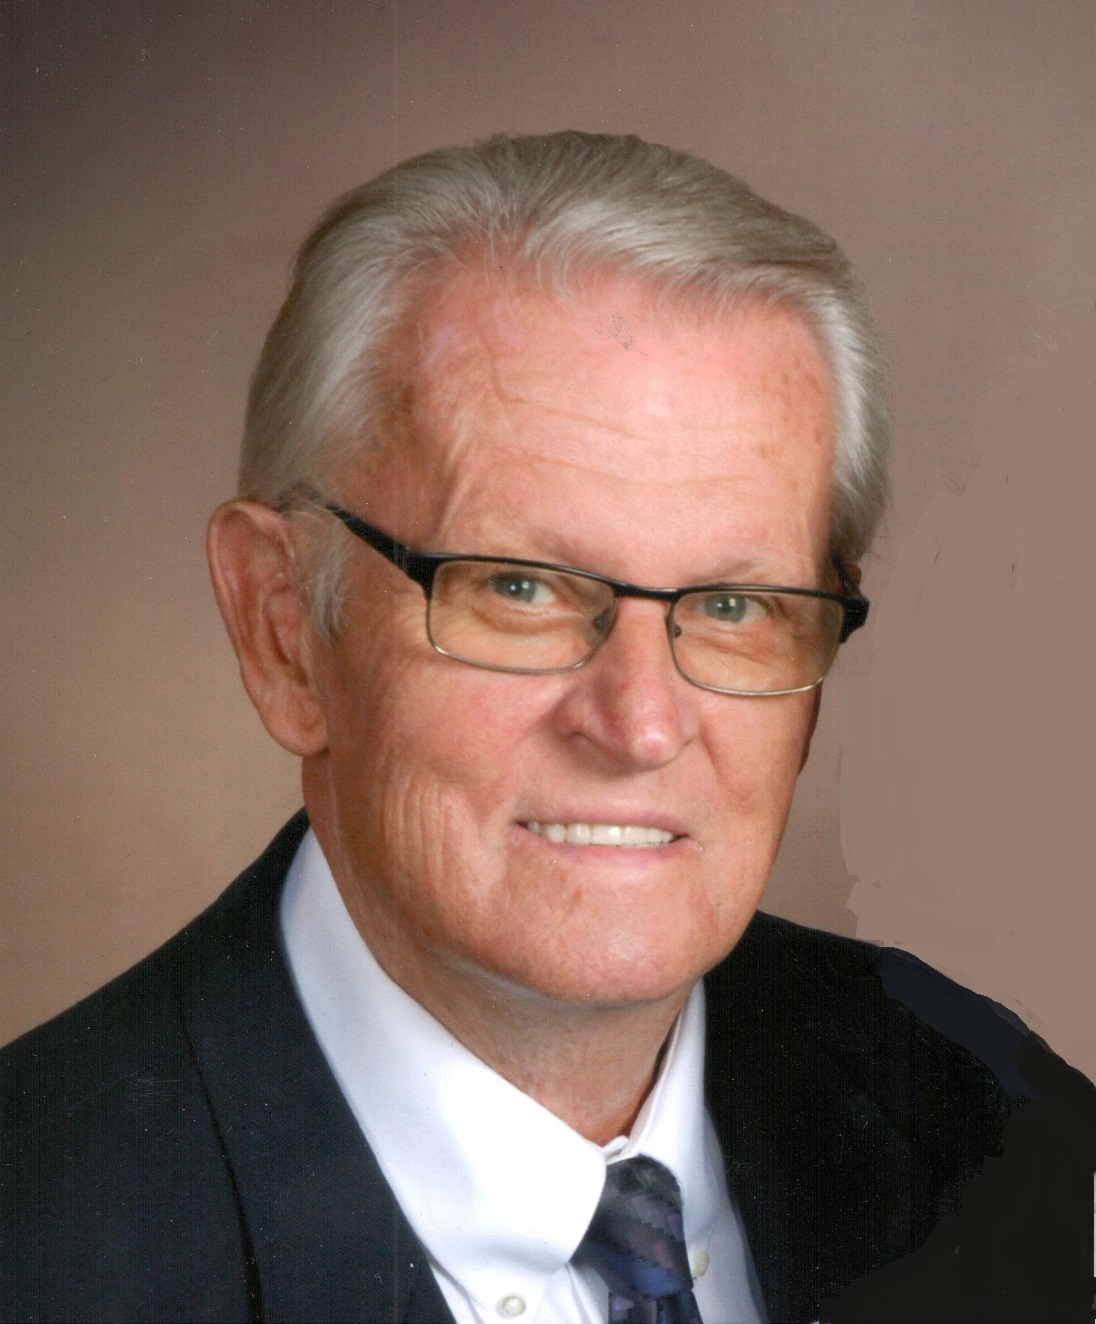 Douglas L. Lukemeyer, age 75 of Jasper